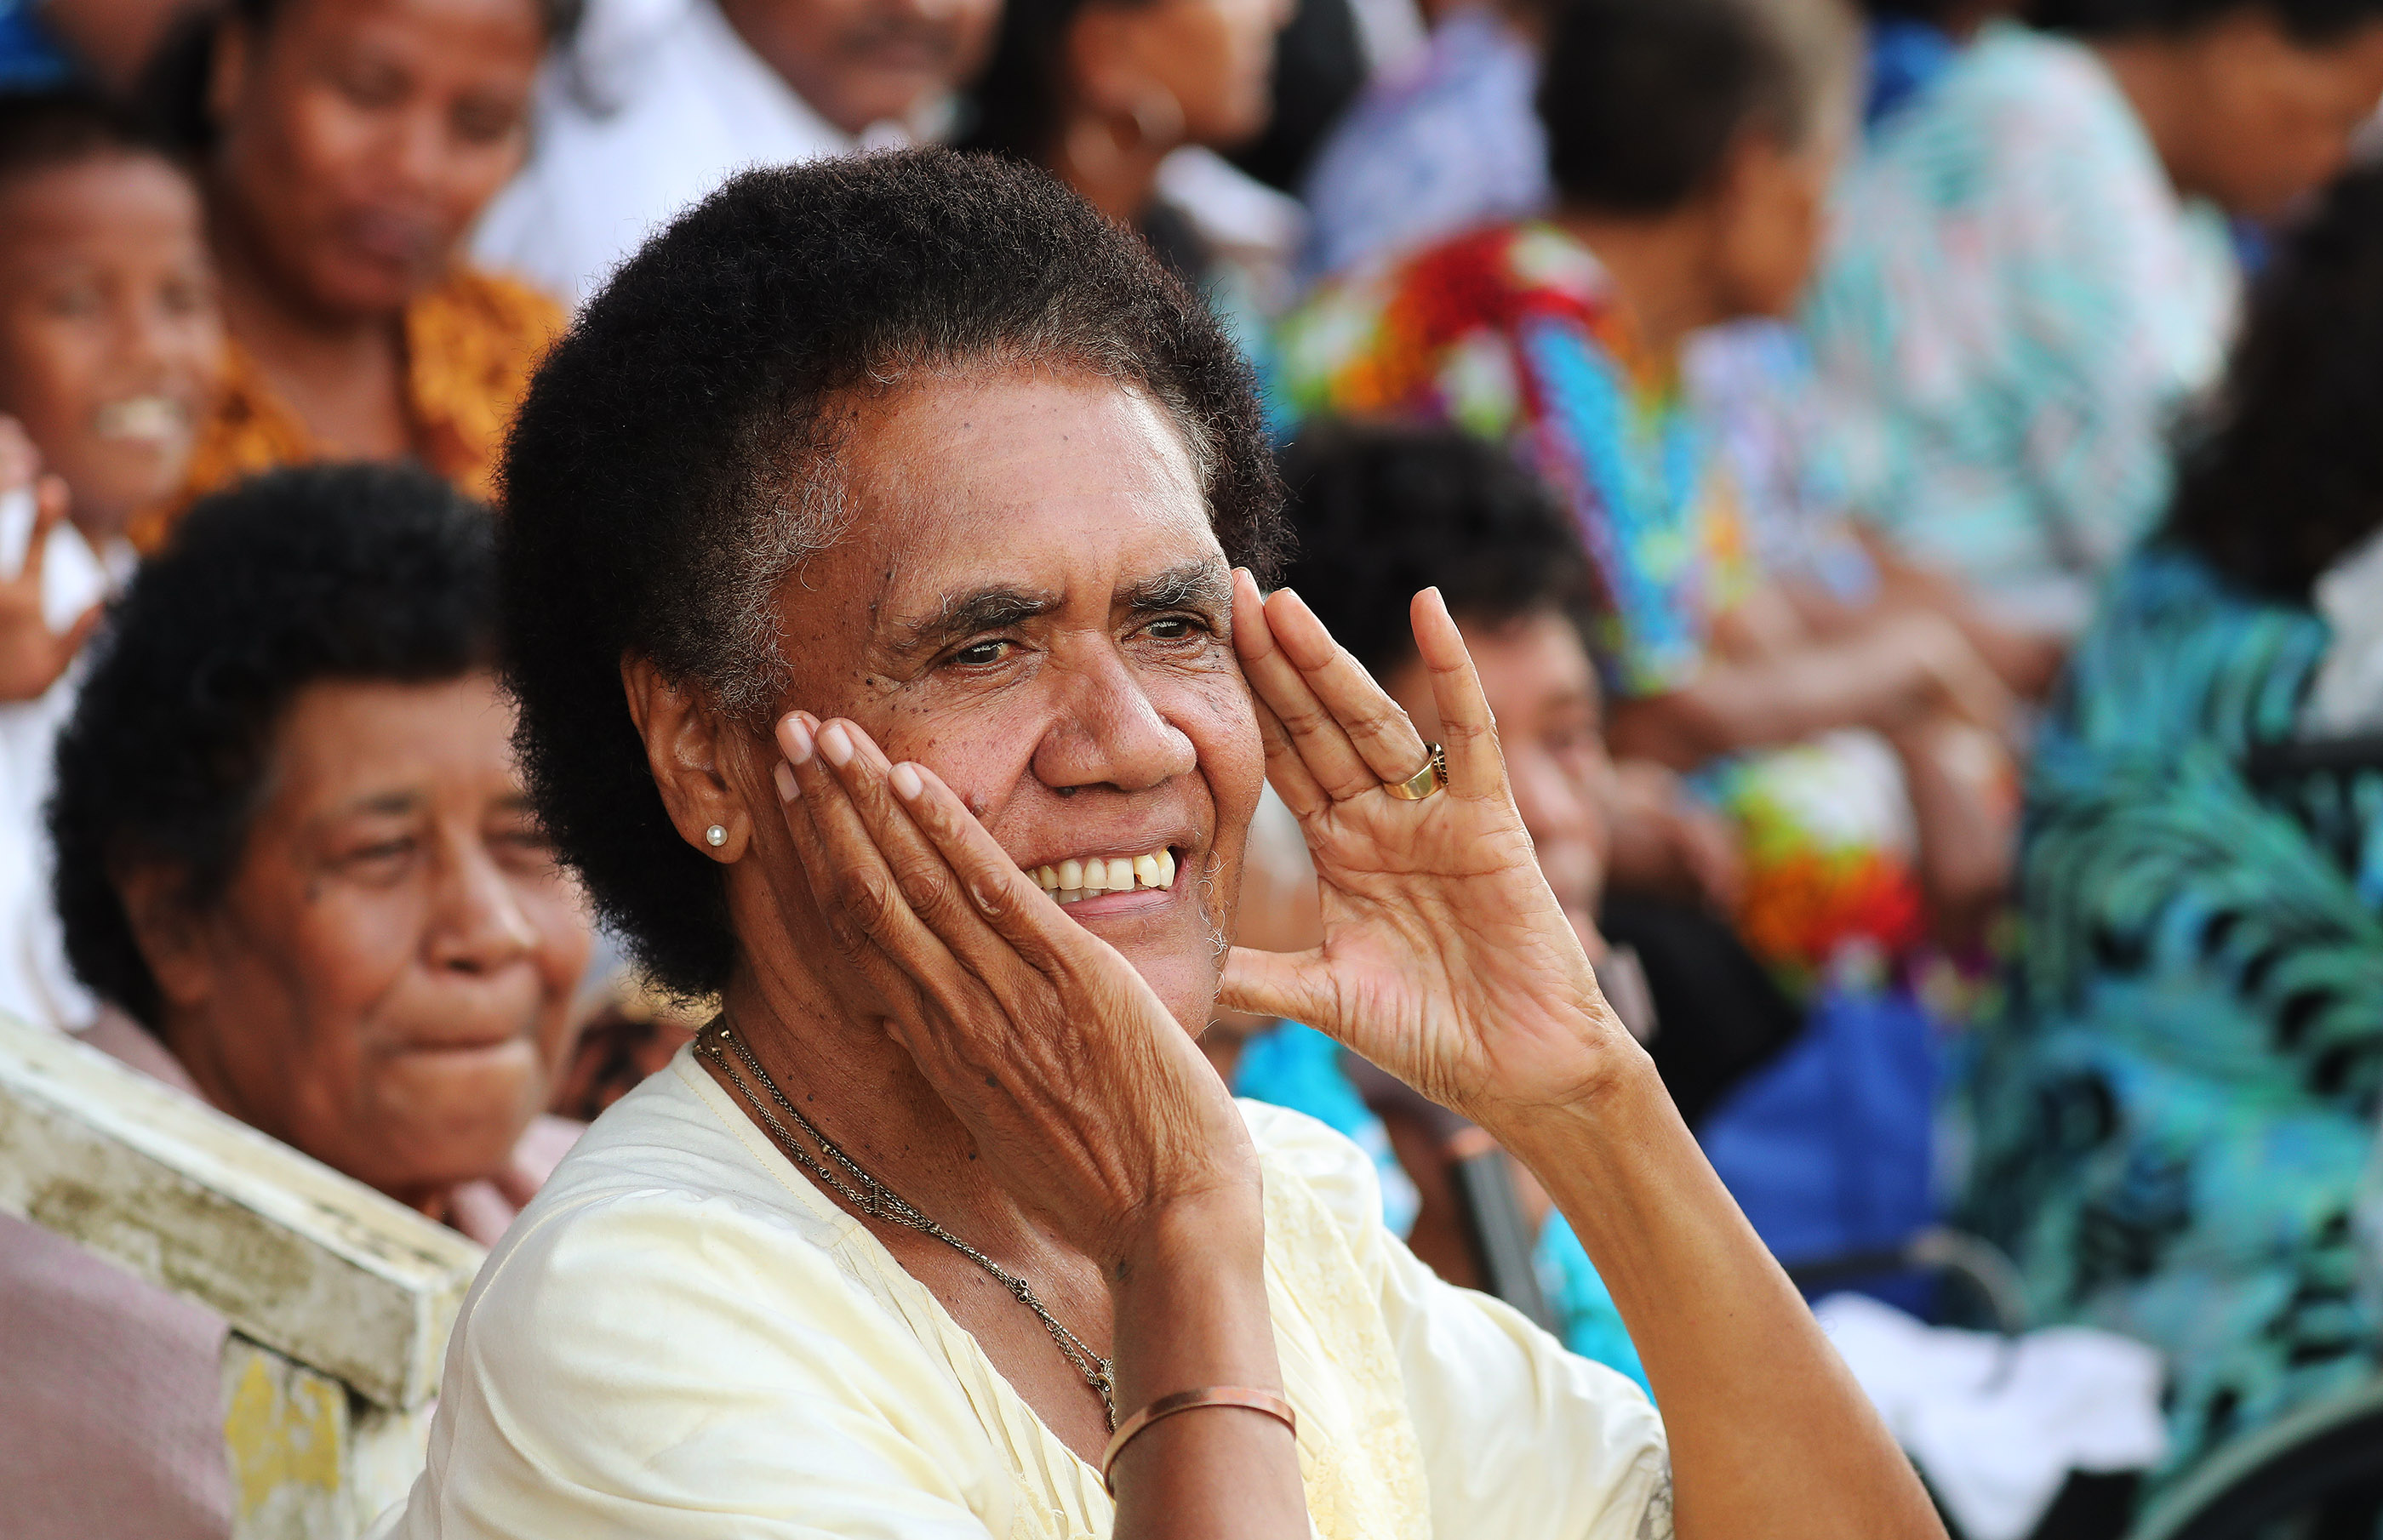 Jis Eseta DiLoi listens to President Russell M. Nelson of The Church of Jesus Christ of Latter-day Saints speaking during a devotional at Ratu Cakobau Park stadium in Nausori, Fiji, on May 22, 2019.